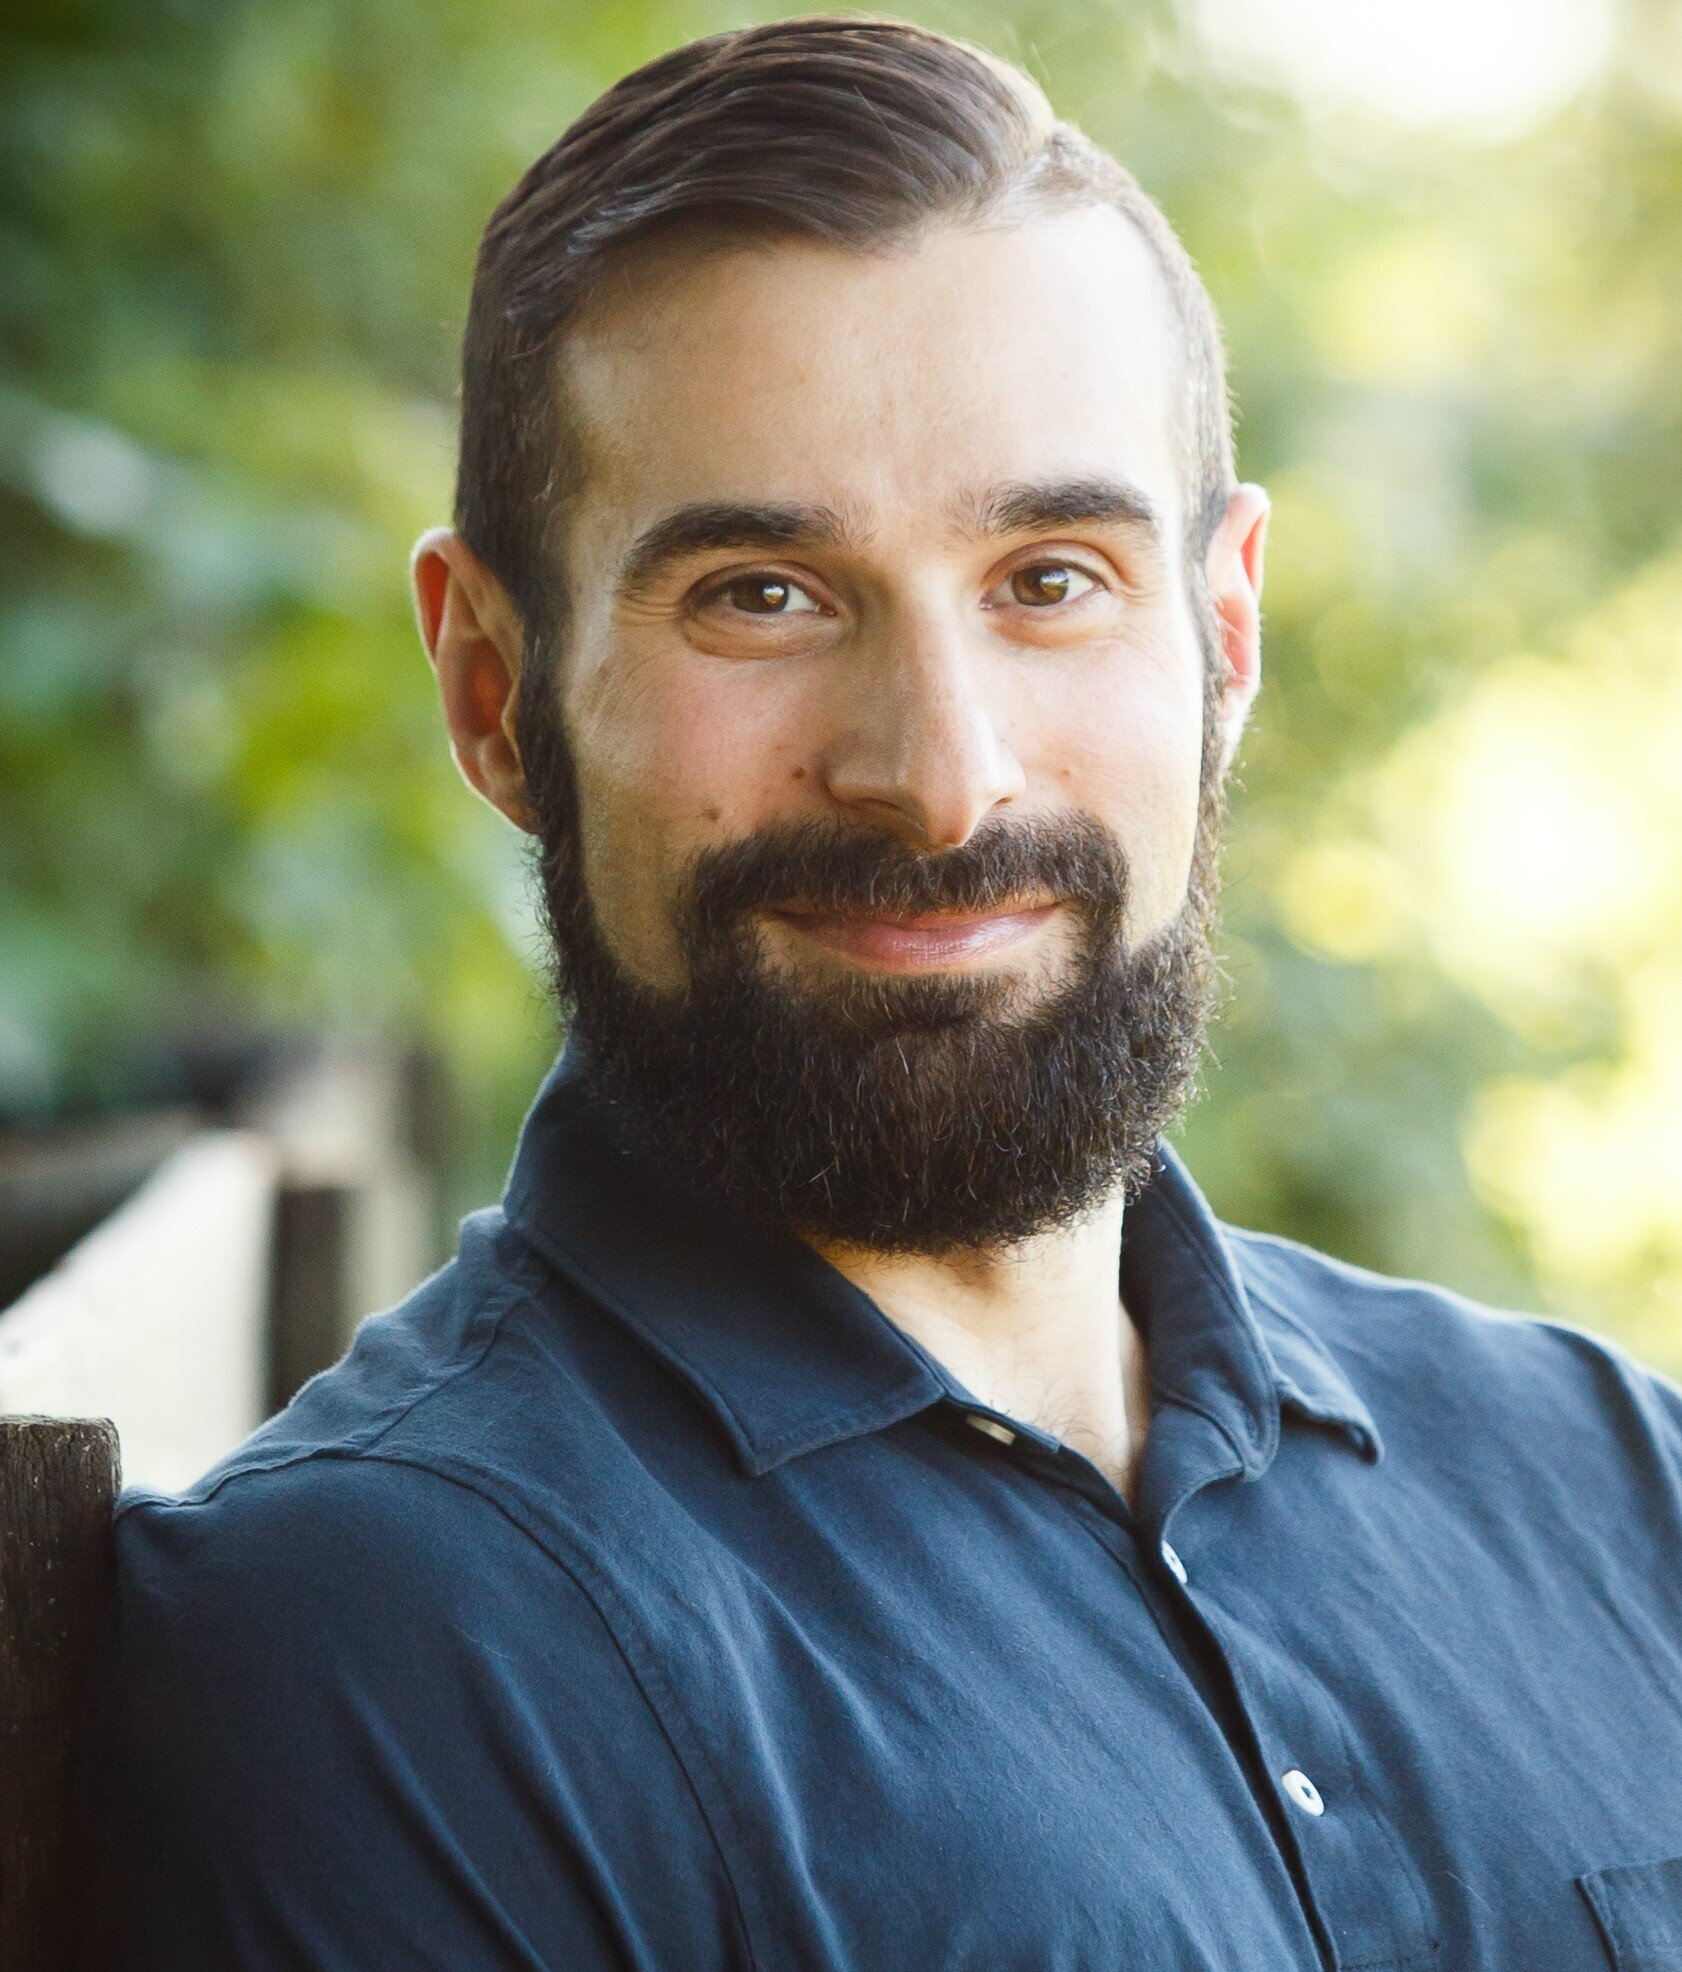 Aaron Wolff  for Holly Springs Town Council   Website  |  Facebook  |  Twitter  |  Instagram    Endorsed by the Wake County Democratic Party